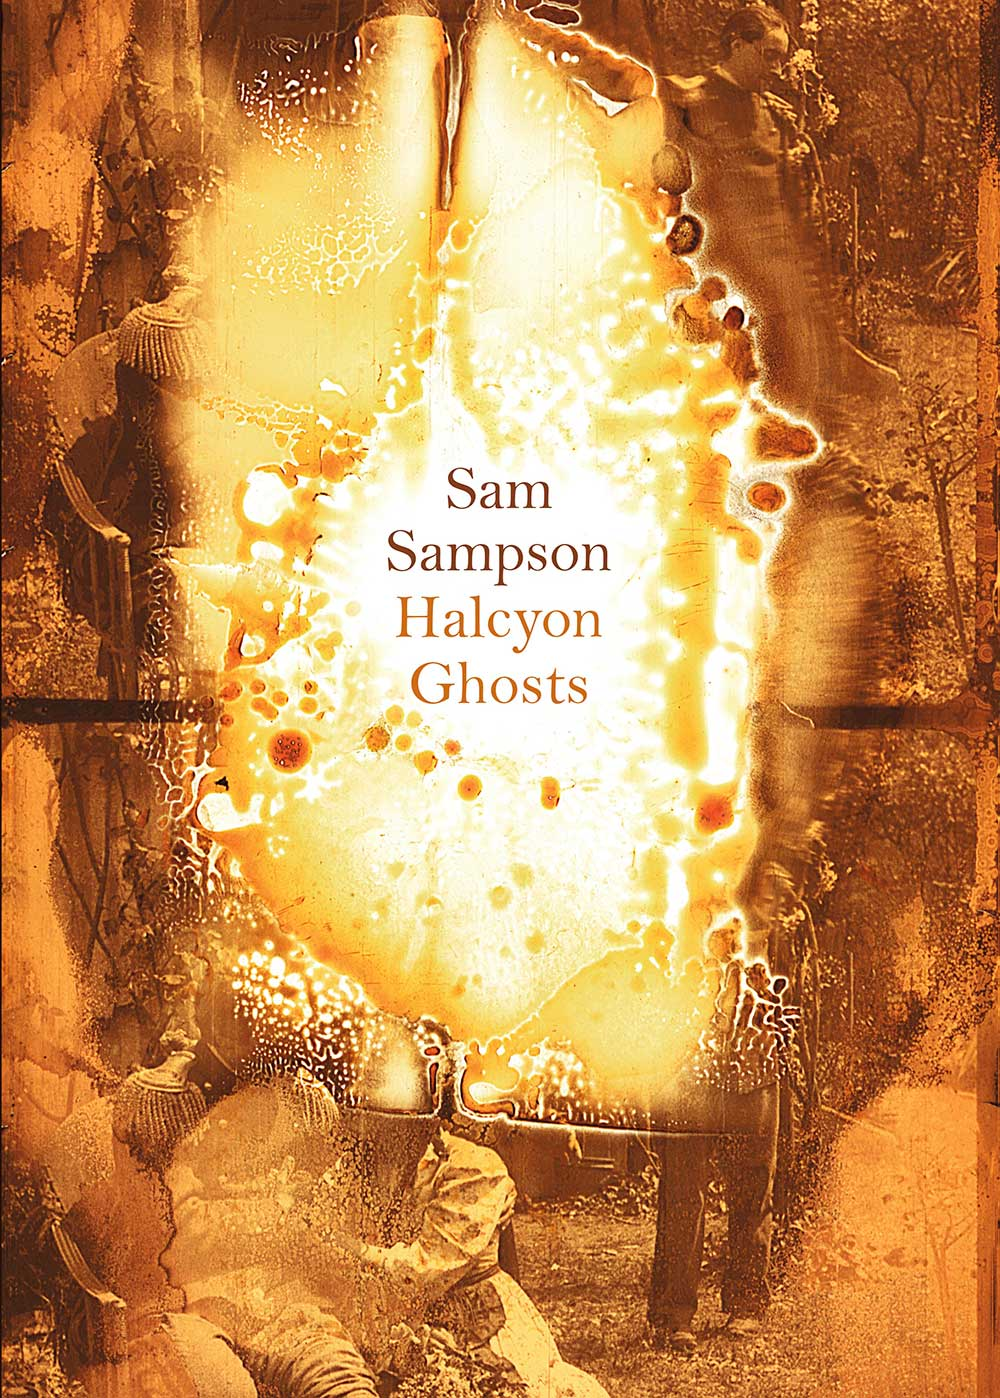 Sampson_Halcyon-Ghosts.jpg